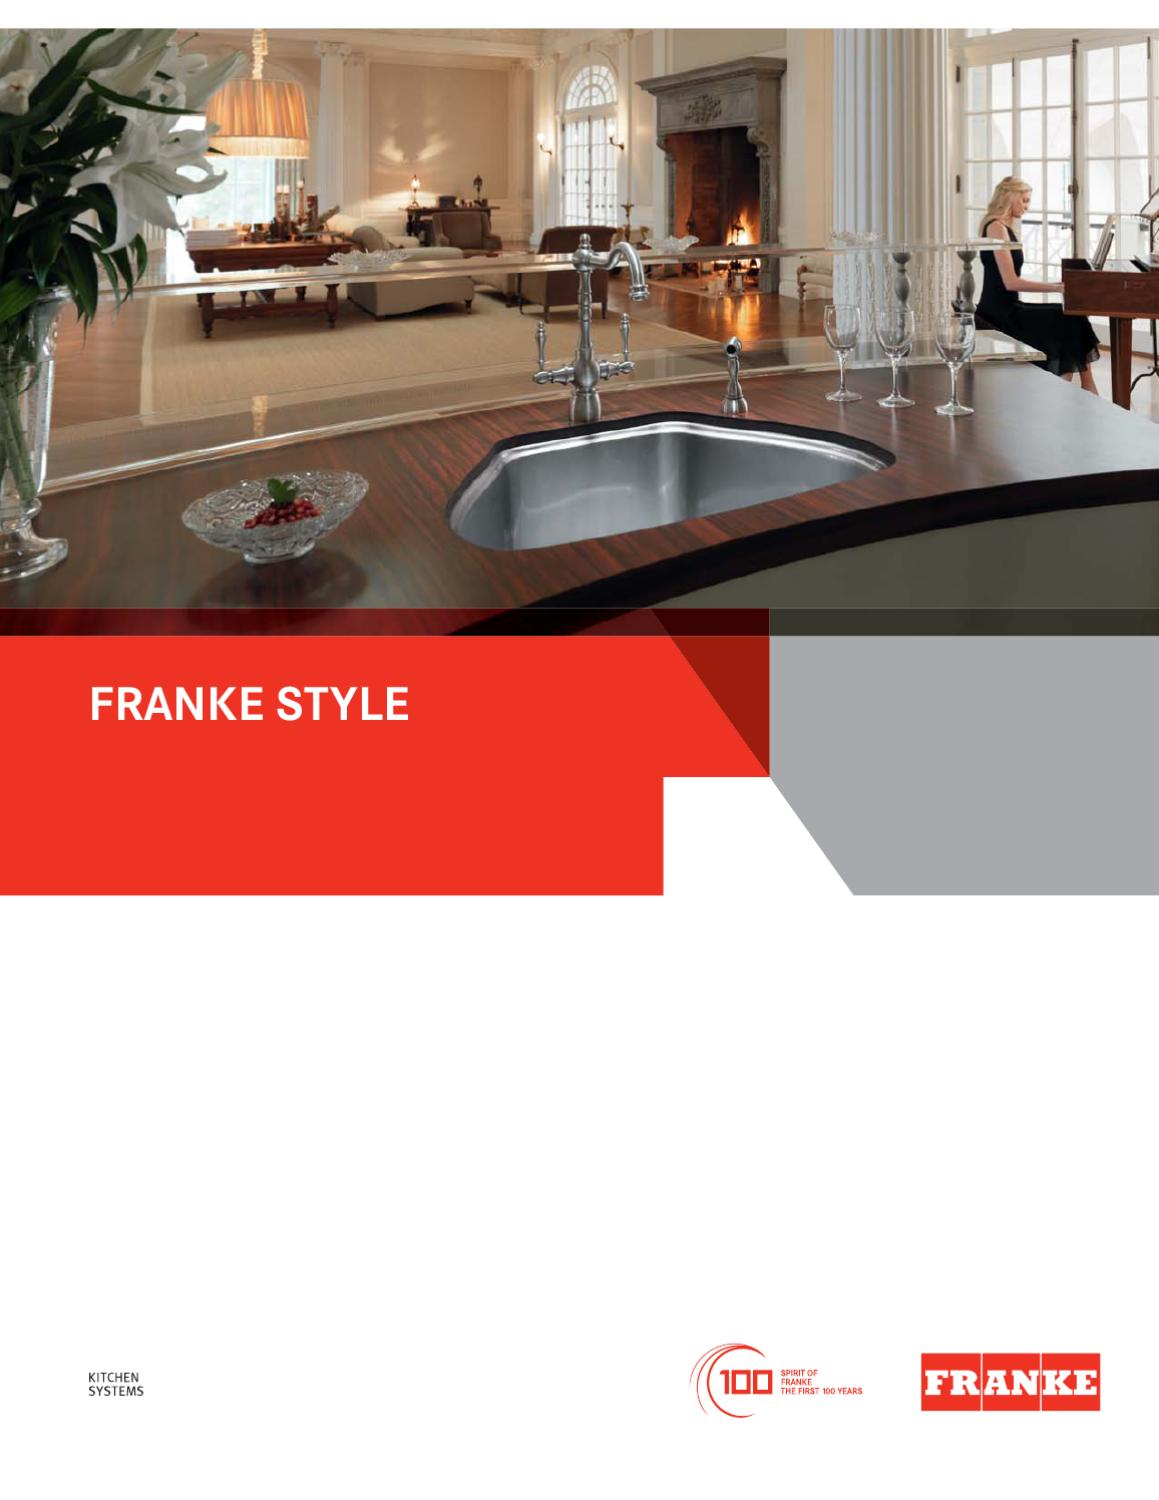 franke kitchen systems technical catalog by franke kitchen. Black Bedroom Furniture Sets. Home Design Ideas